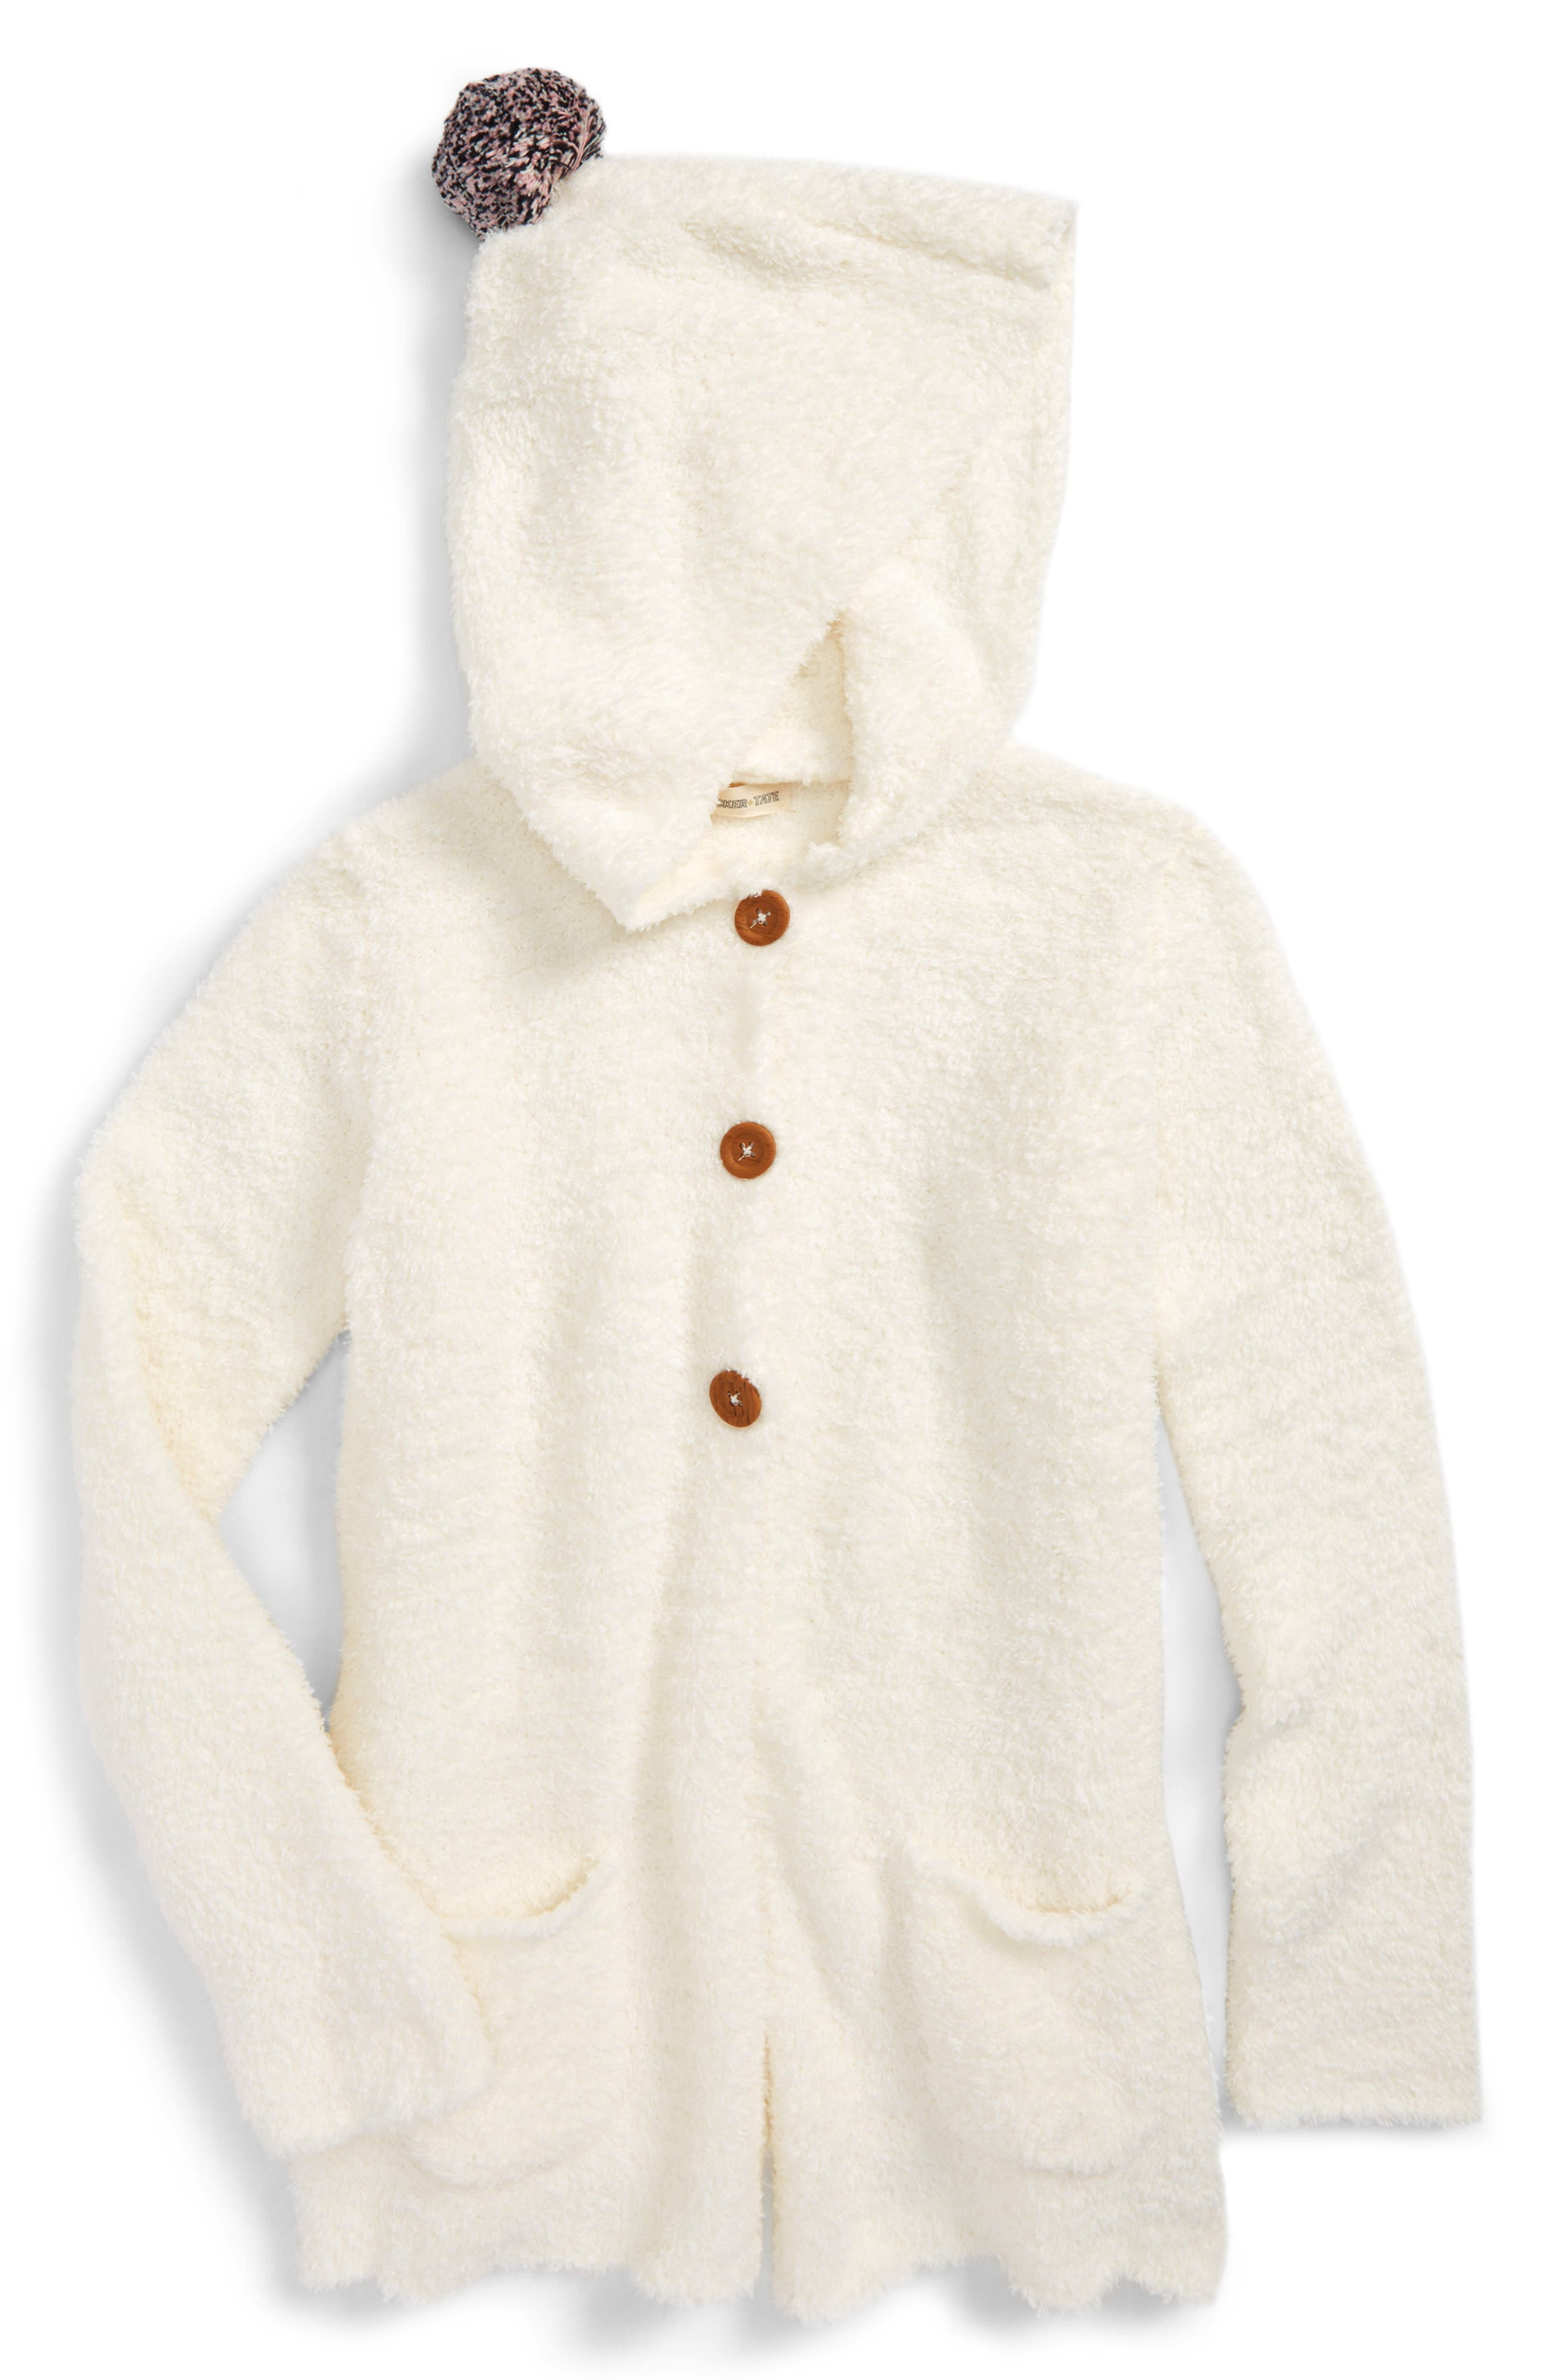 Main Image - Tucker + Tate Cozy Hooded Cardigan (Toddler Girls, Little Girls & Big Girls)